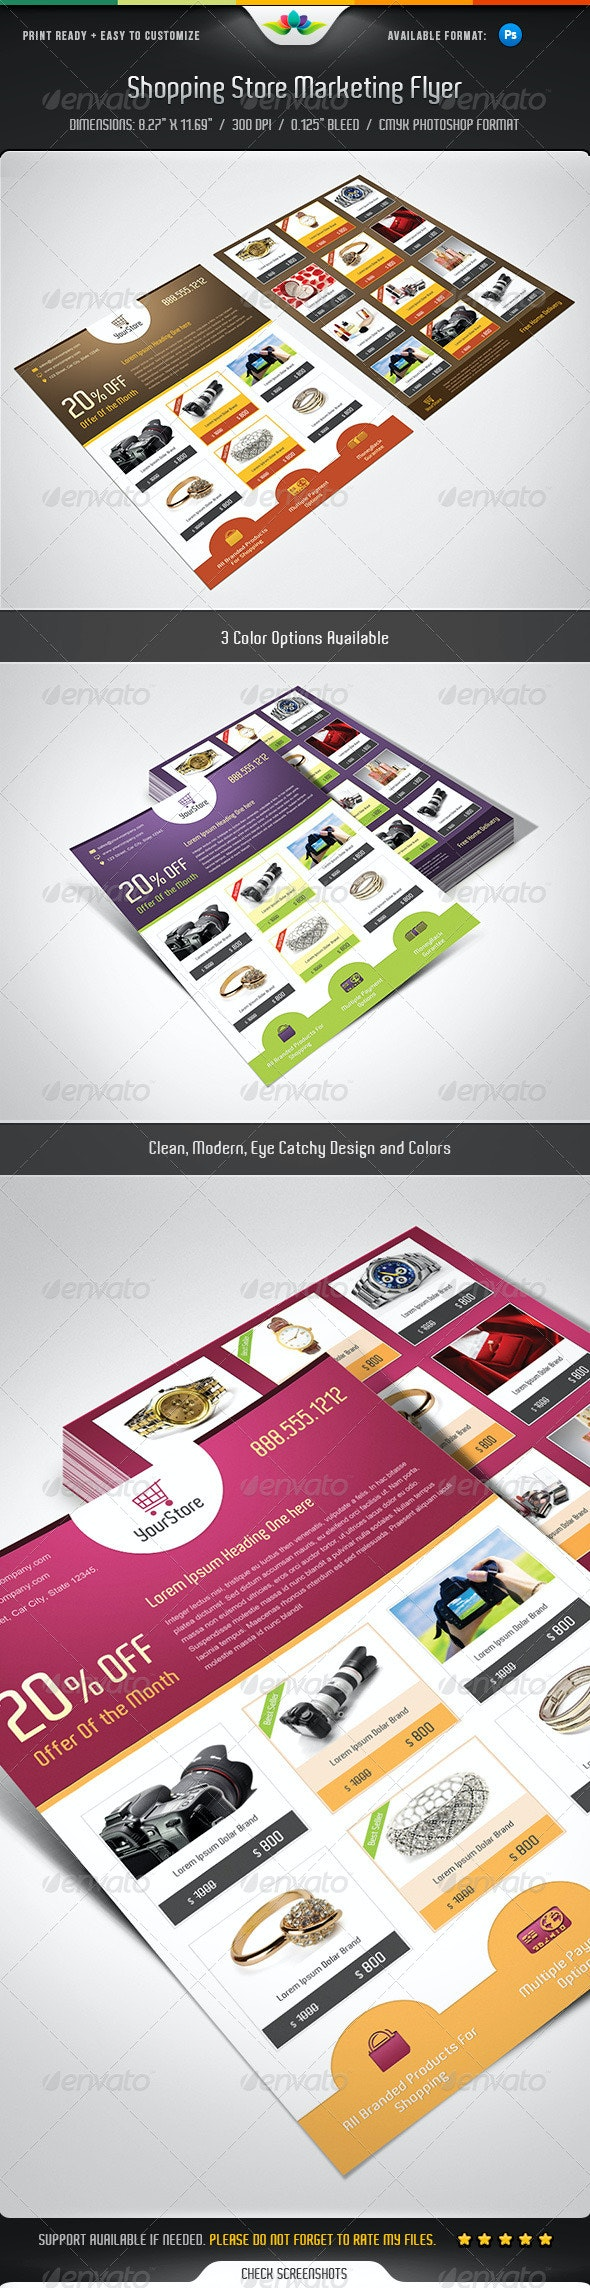 Shopping Store Marketing Flyer - Commerce Flyers